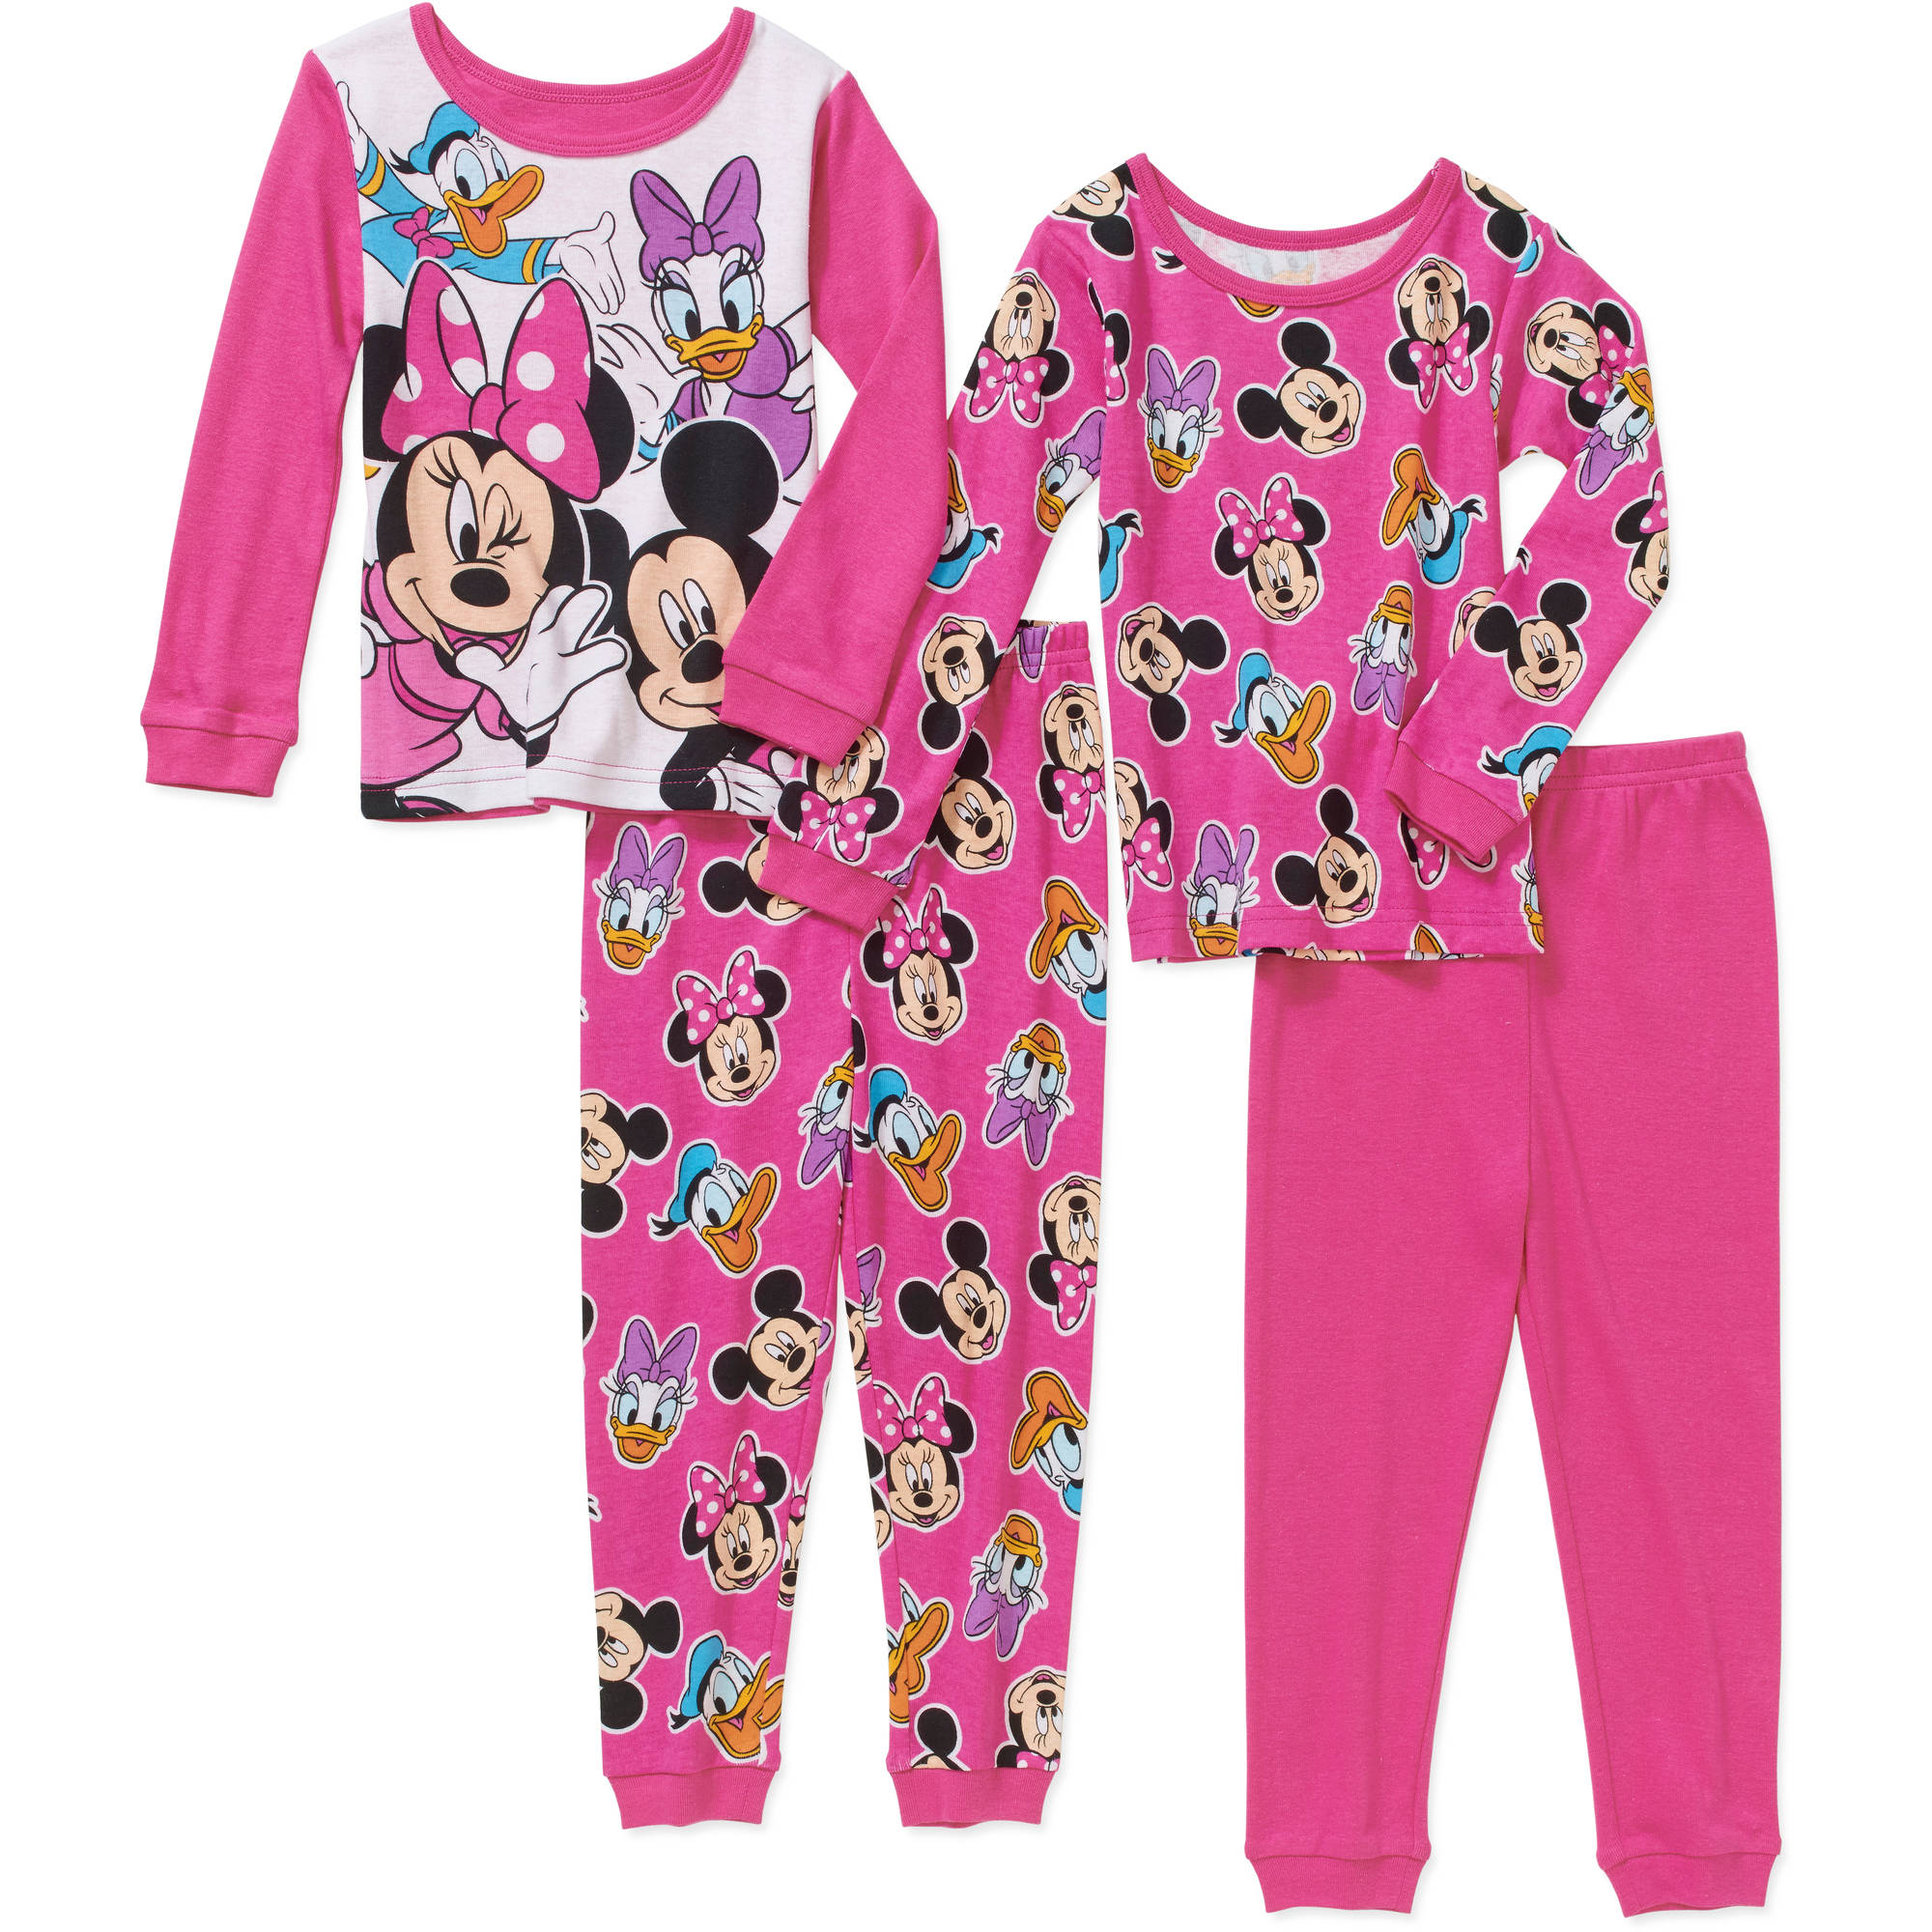 Minnie Mouse Toddler Girl Minnie and Friends Cotton Tight Fit Pajamas 4pc Set